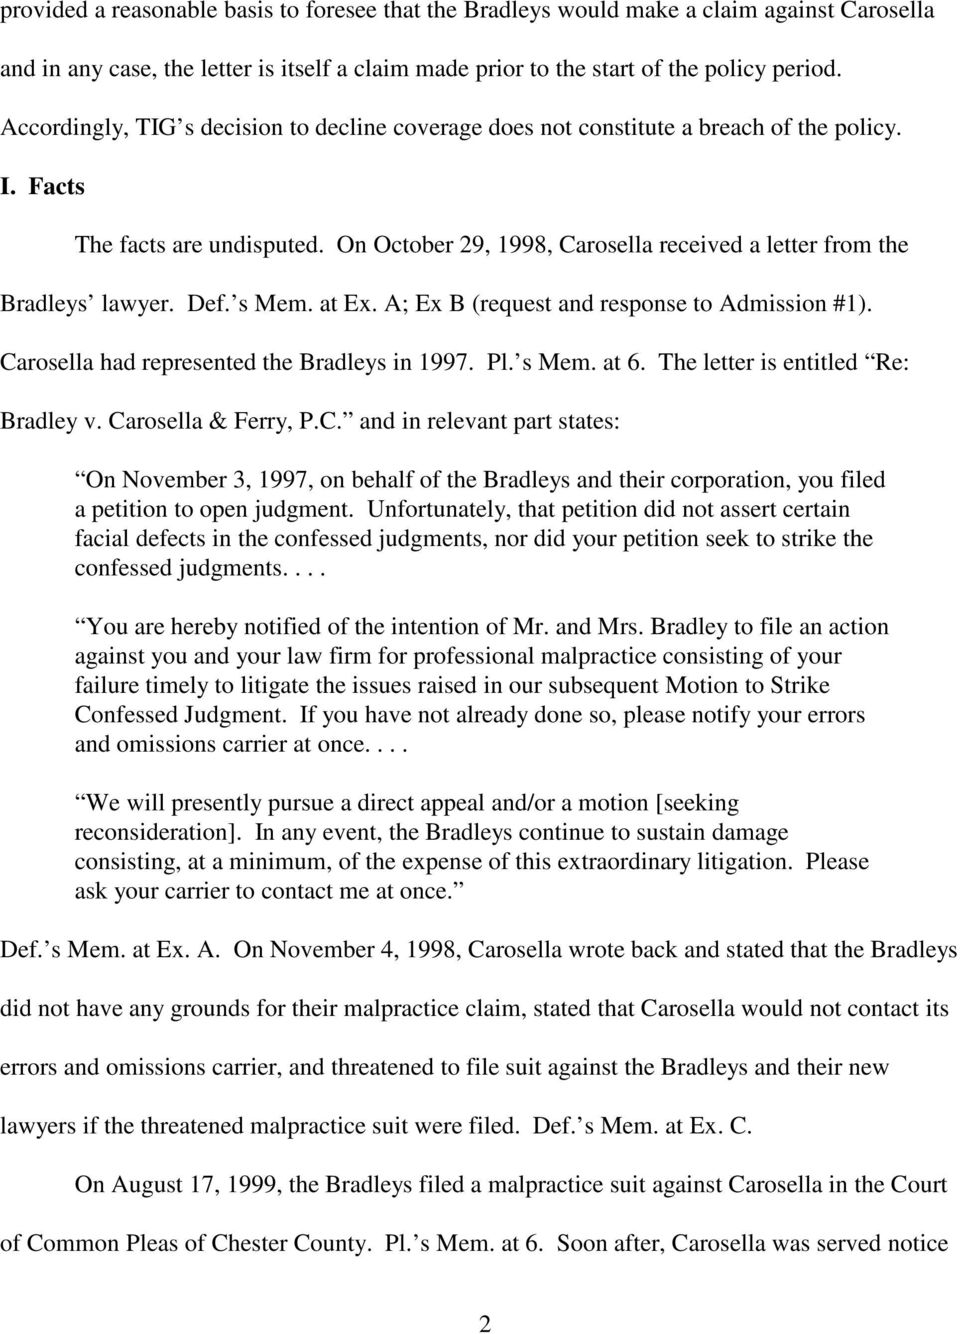 On October 29, 1998, Carosella received a letter from the Bradleys lawyer. Def. s Mem. at Ex. A; Ex B (request and response to Admission #1). Carosella had represented the Bradleys in 1997. Pl. s Mem. at 6.